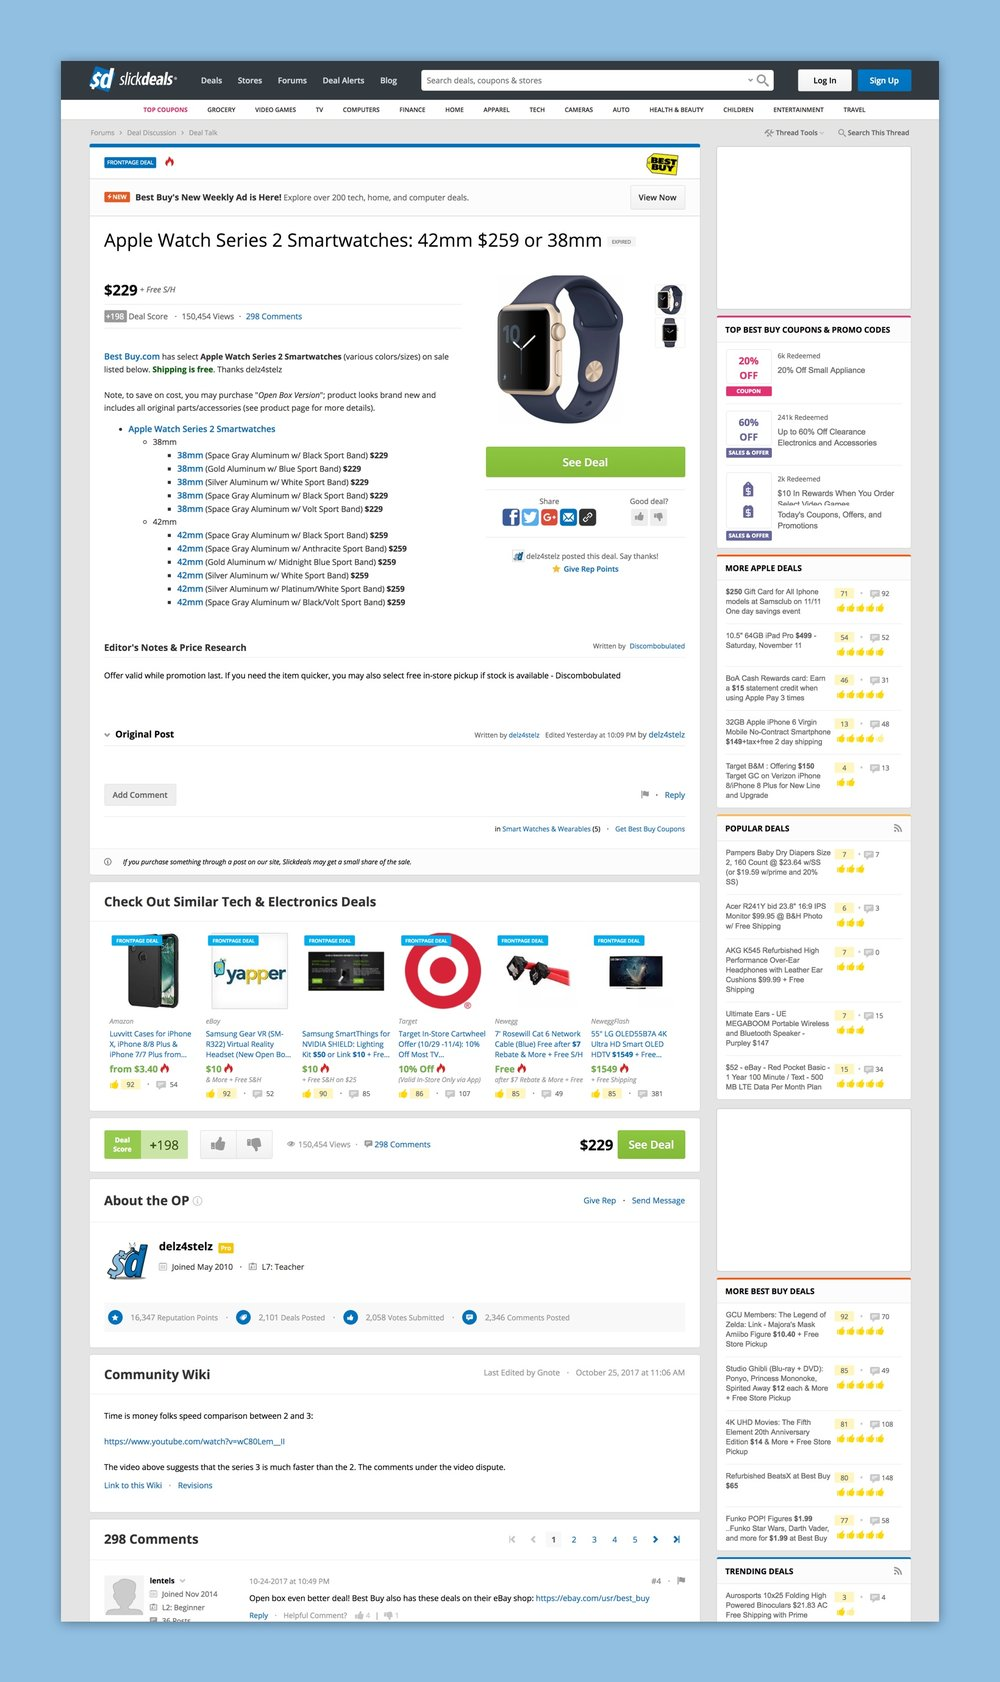 Product Page - Old.jpg